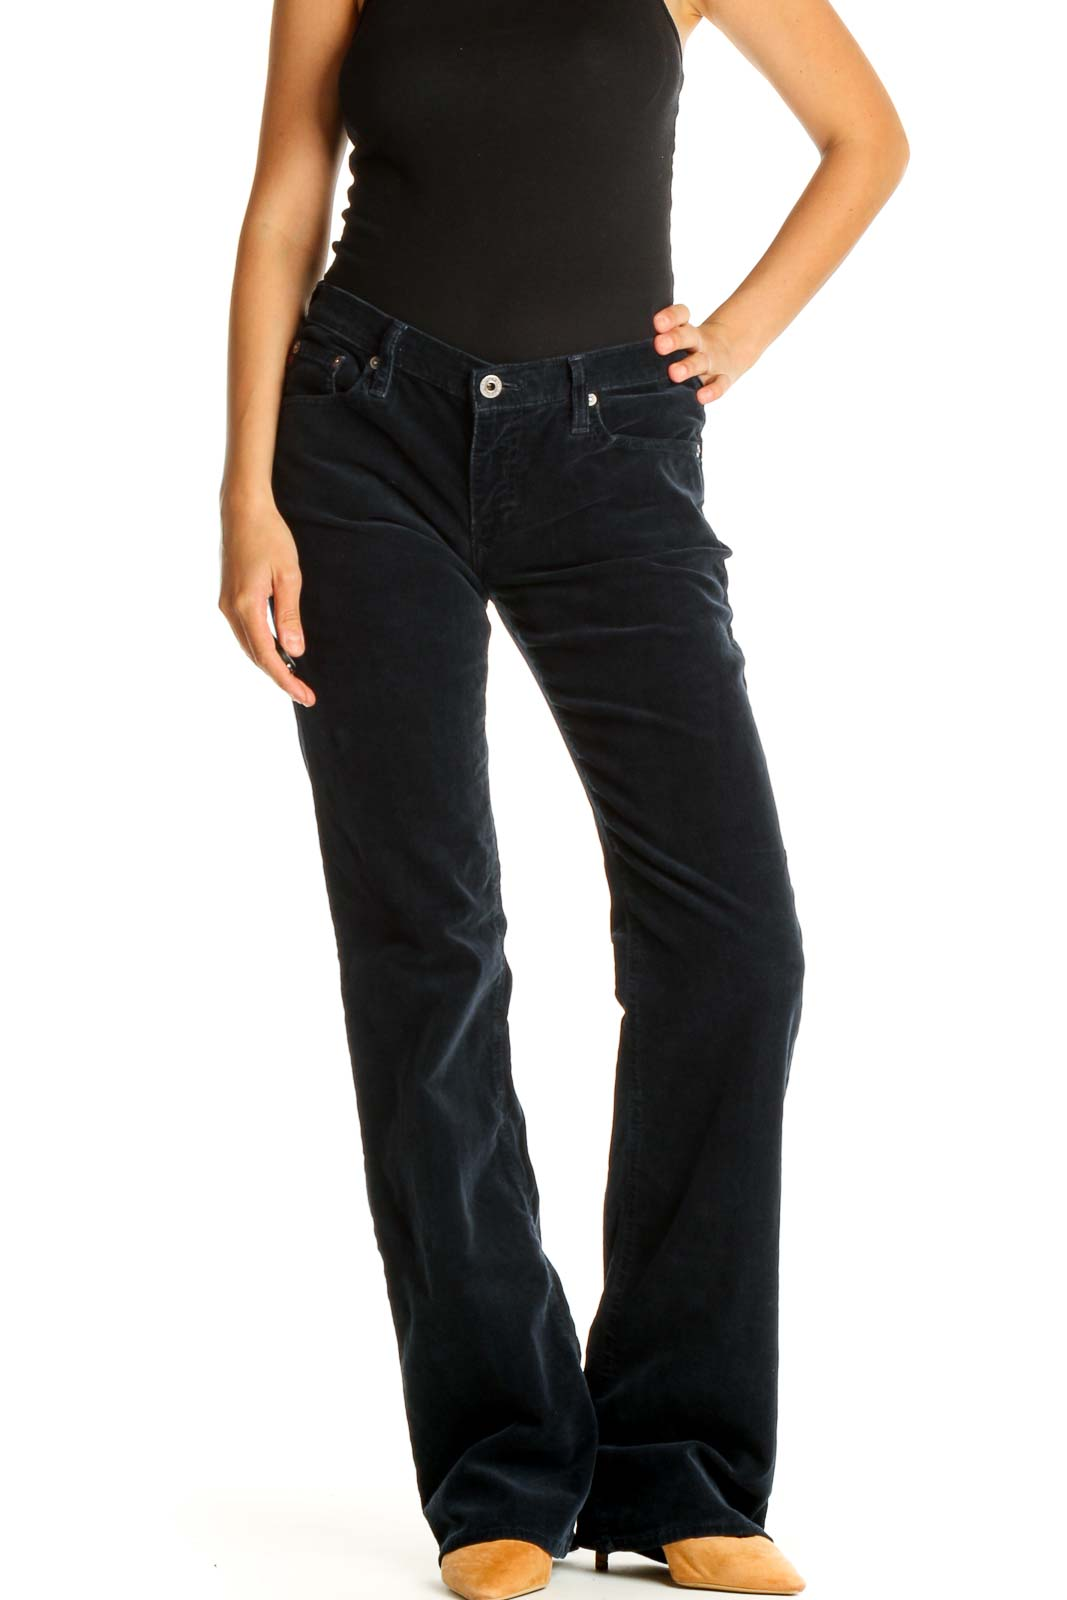 Black Solid All Day Wear Pants Front